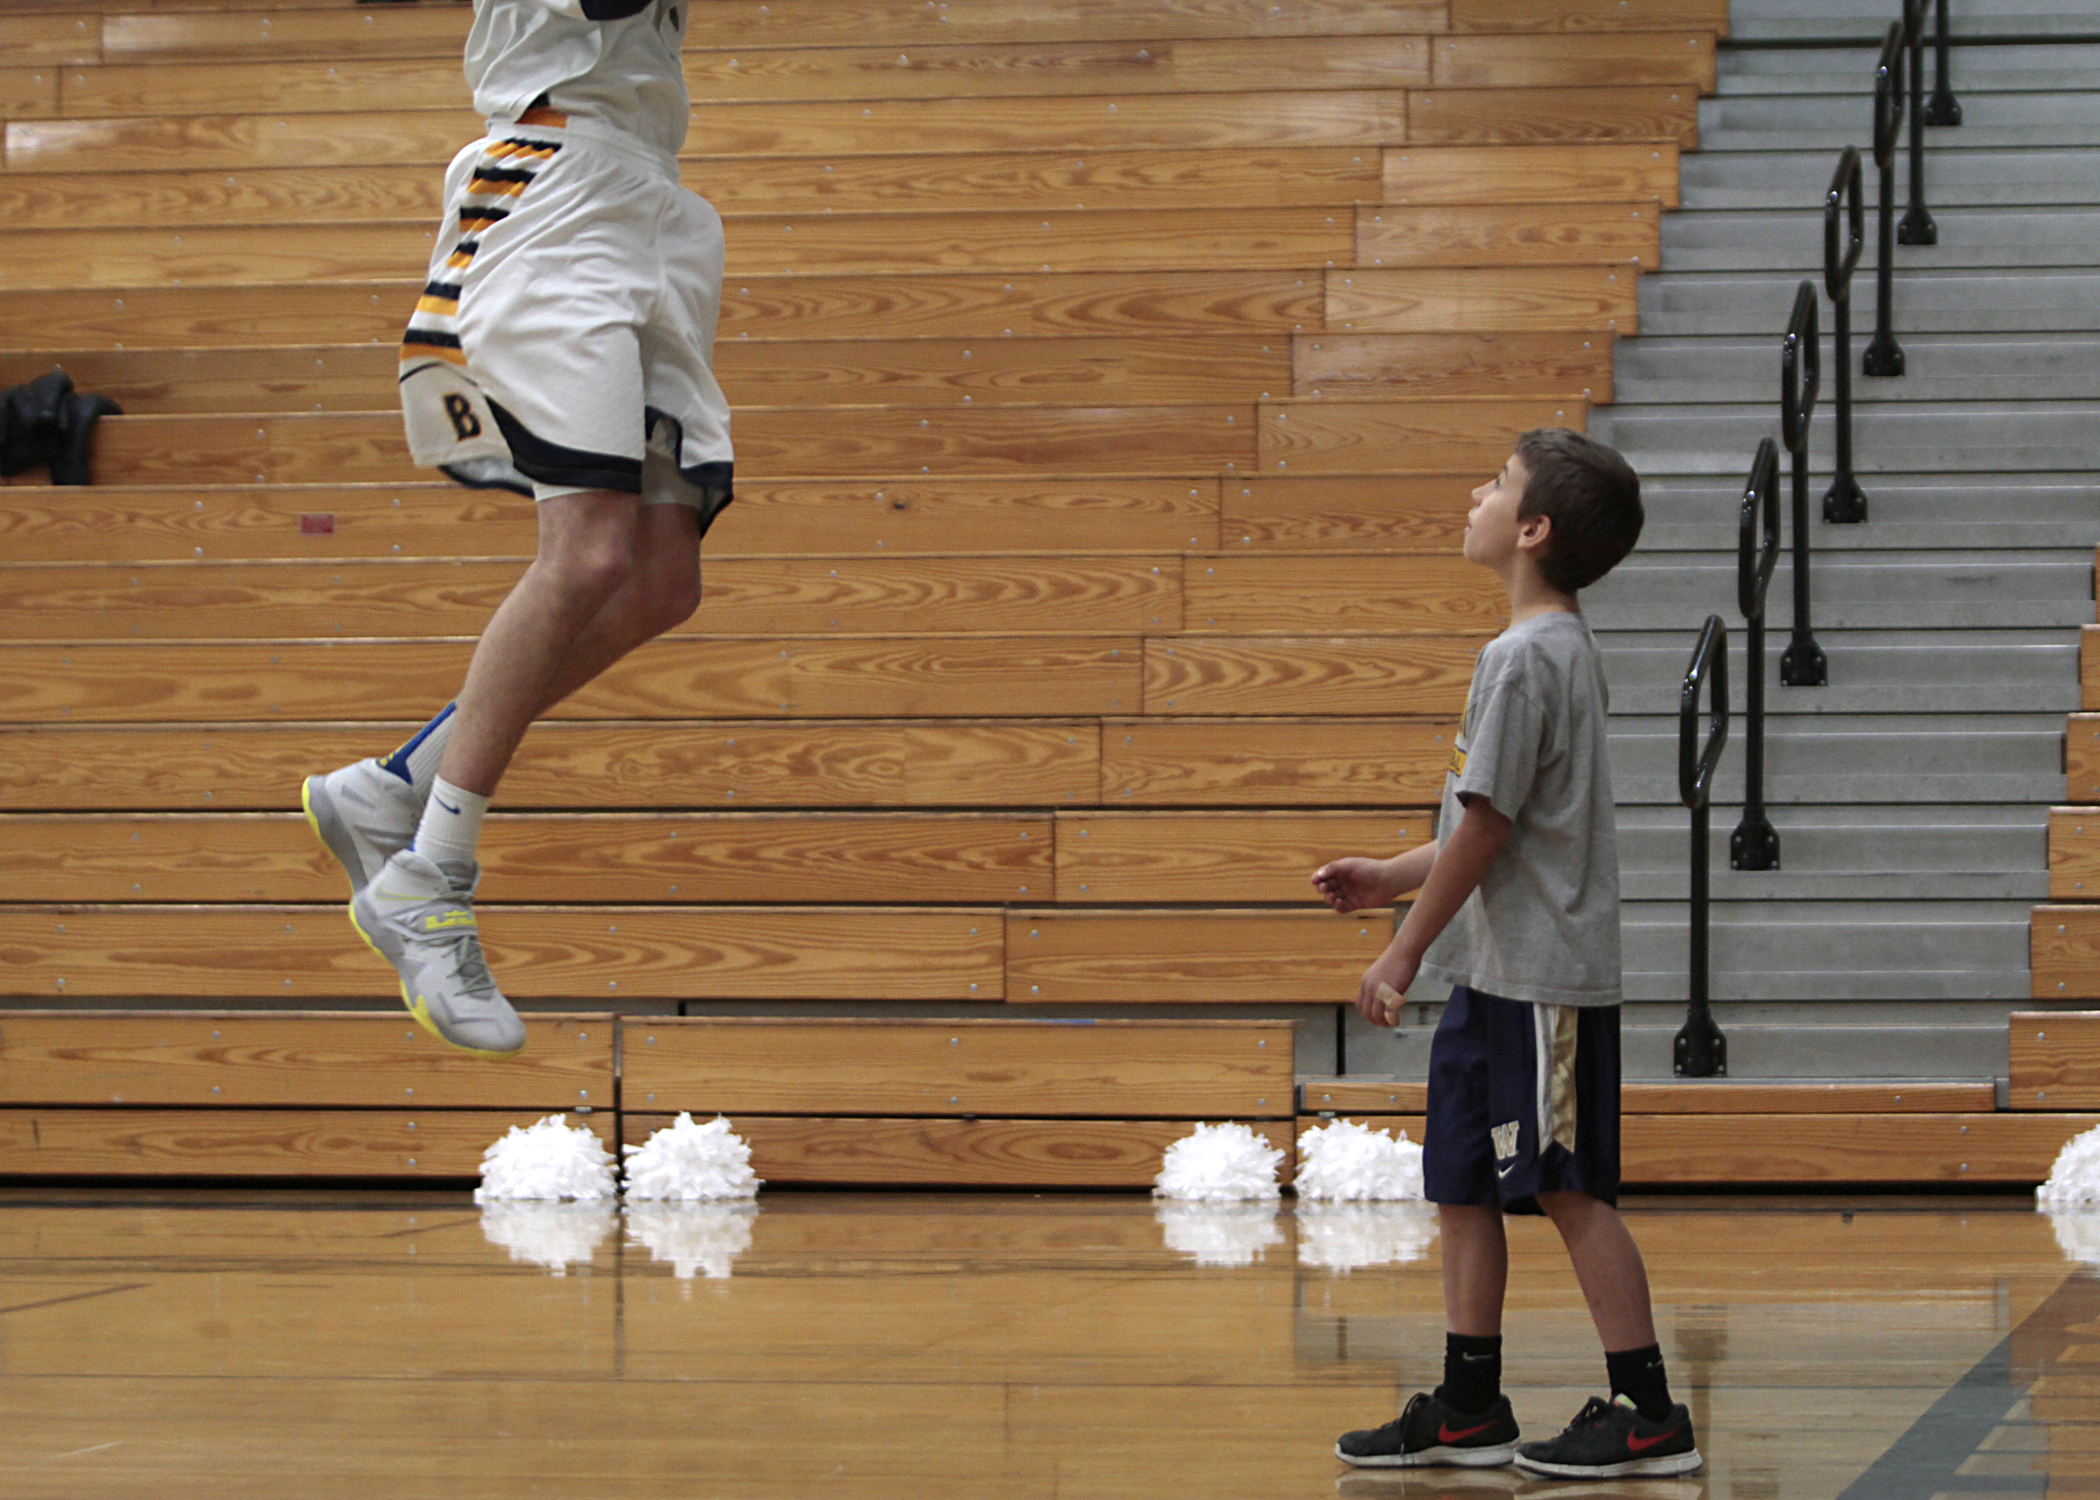 Cade Orness, 8, son of Bainbridge High boys basketball Head Coach Scott Orness, gets closer than the average fan as he watches from under the net as a player goes up for a rebound during a warm-up session.